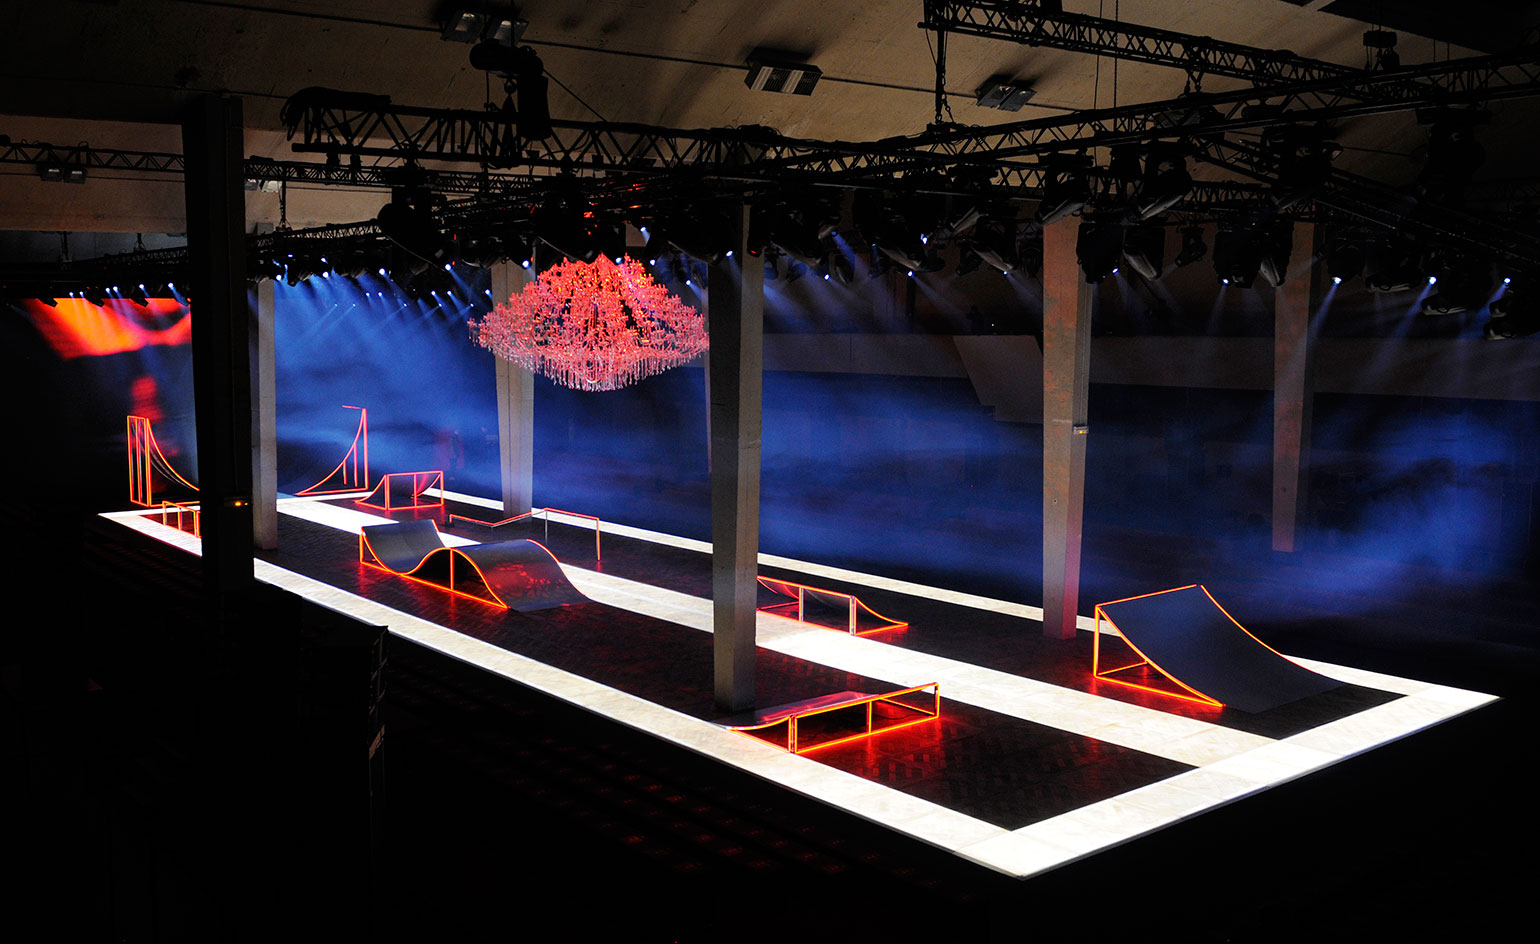 Super high-cut bikinis take centre stage at Fashion Week Stage designs for fashion shows